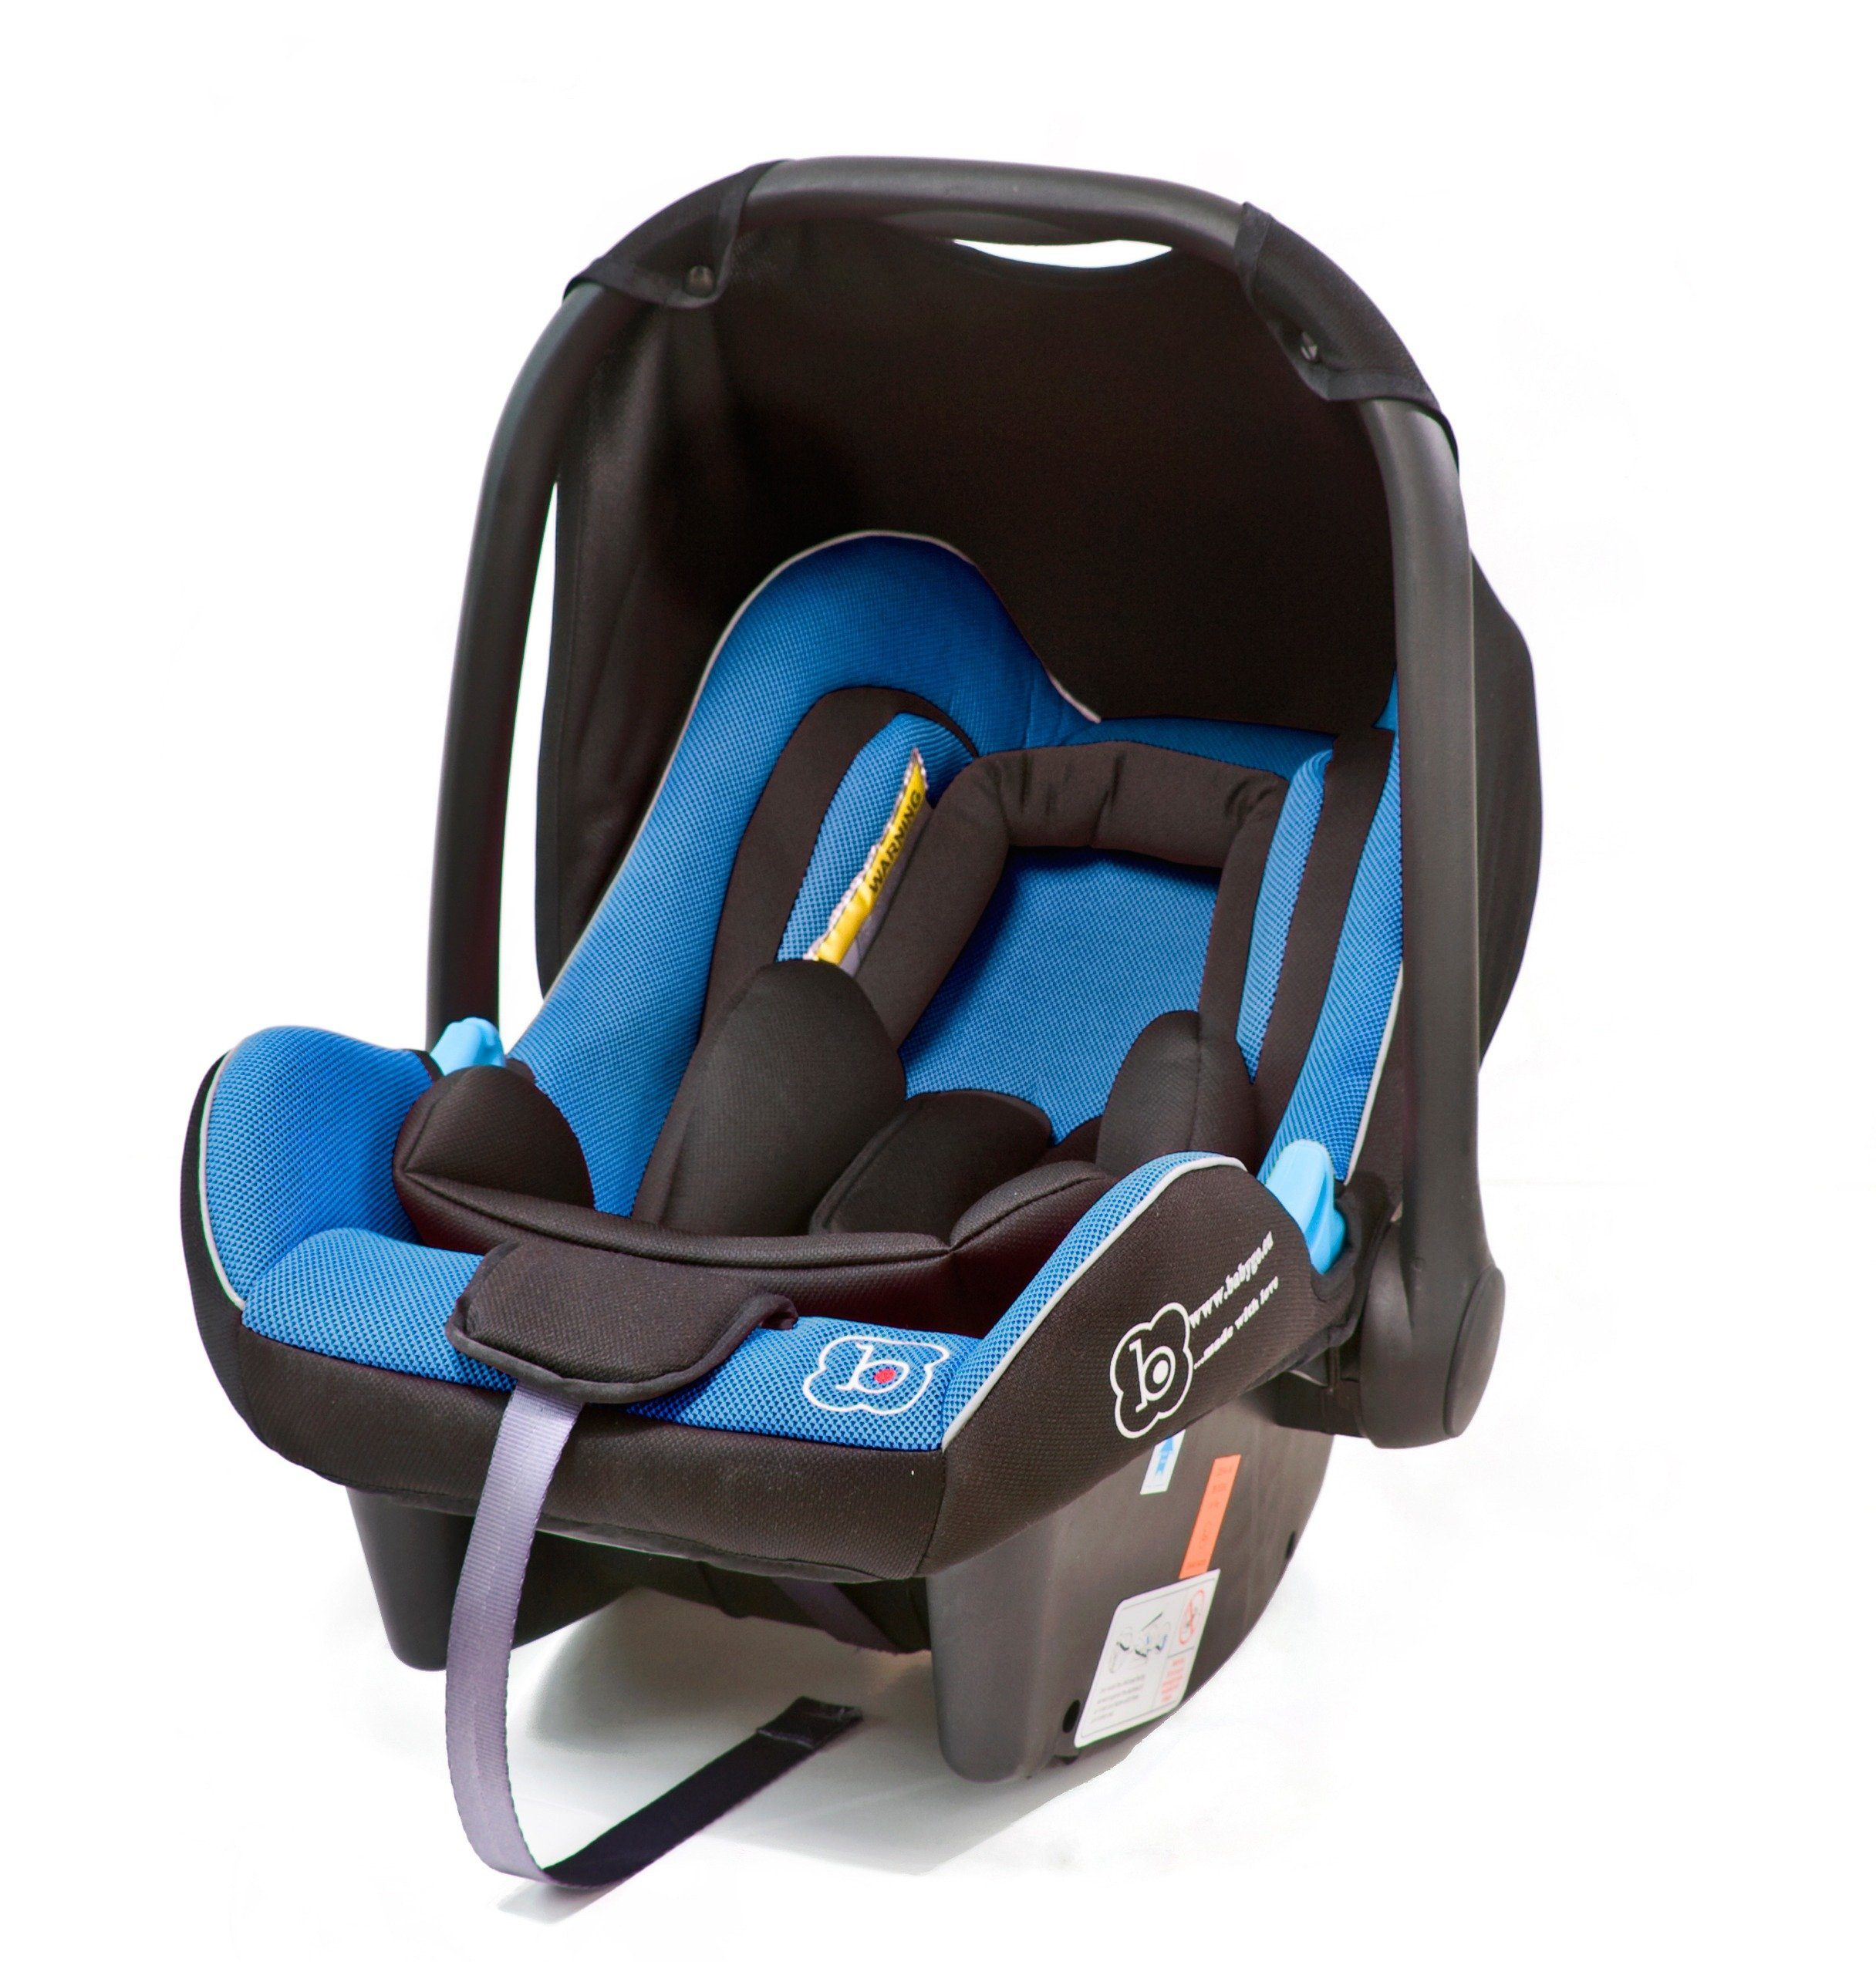 BABYGO Babyschale »Travel XP«, 0 - 13 kg, Reboard